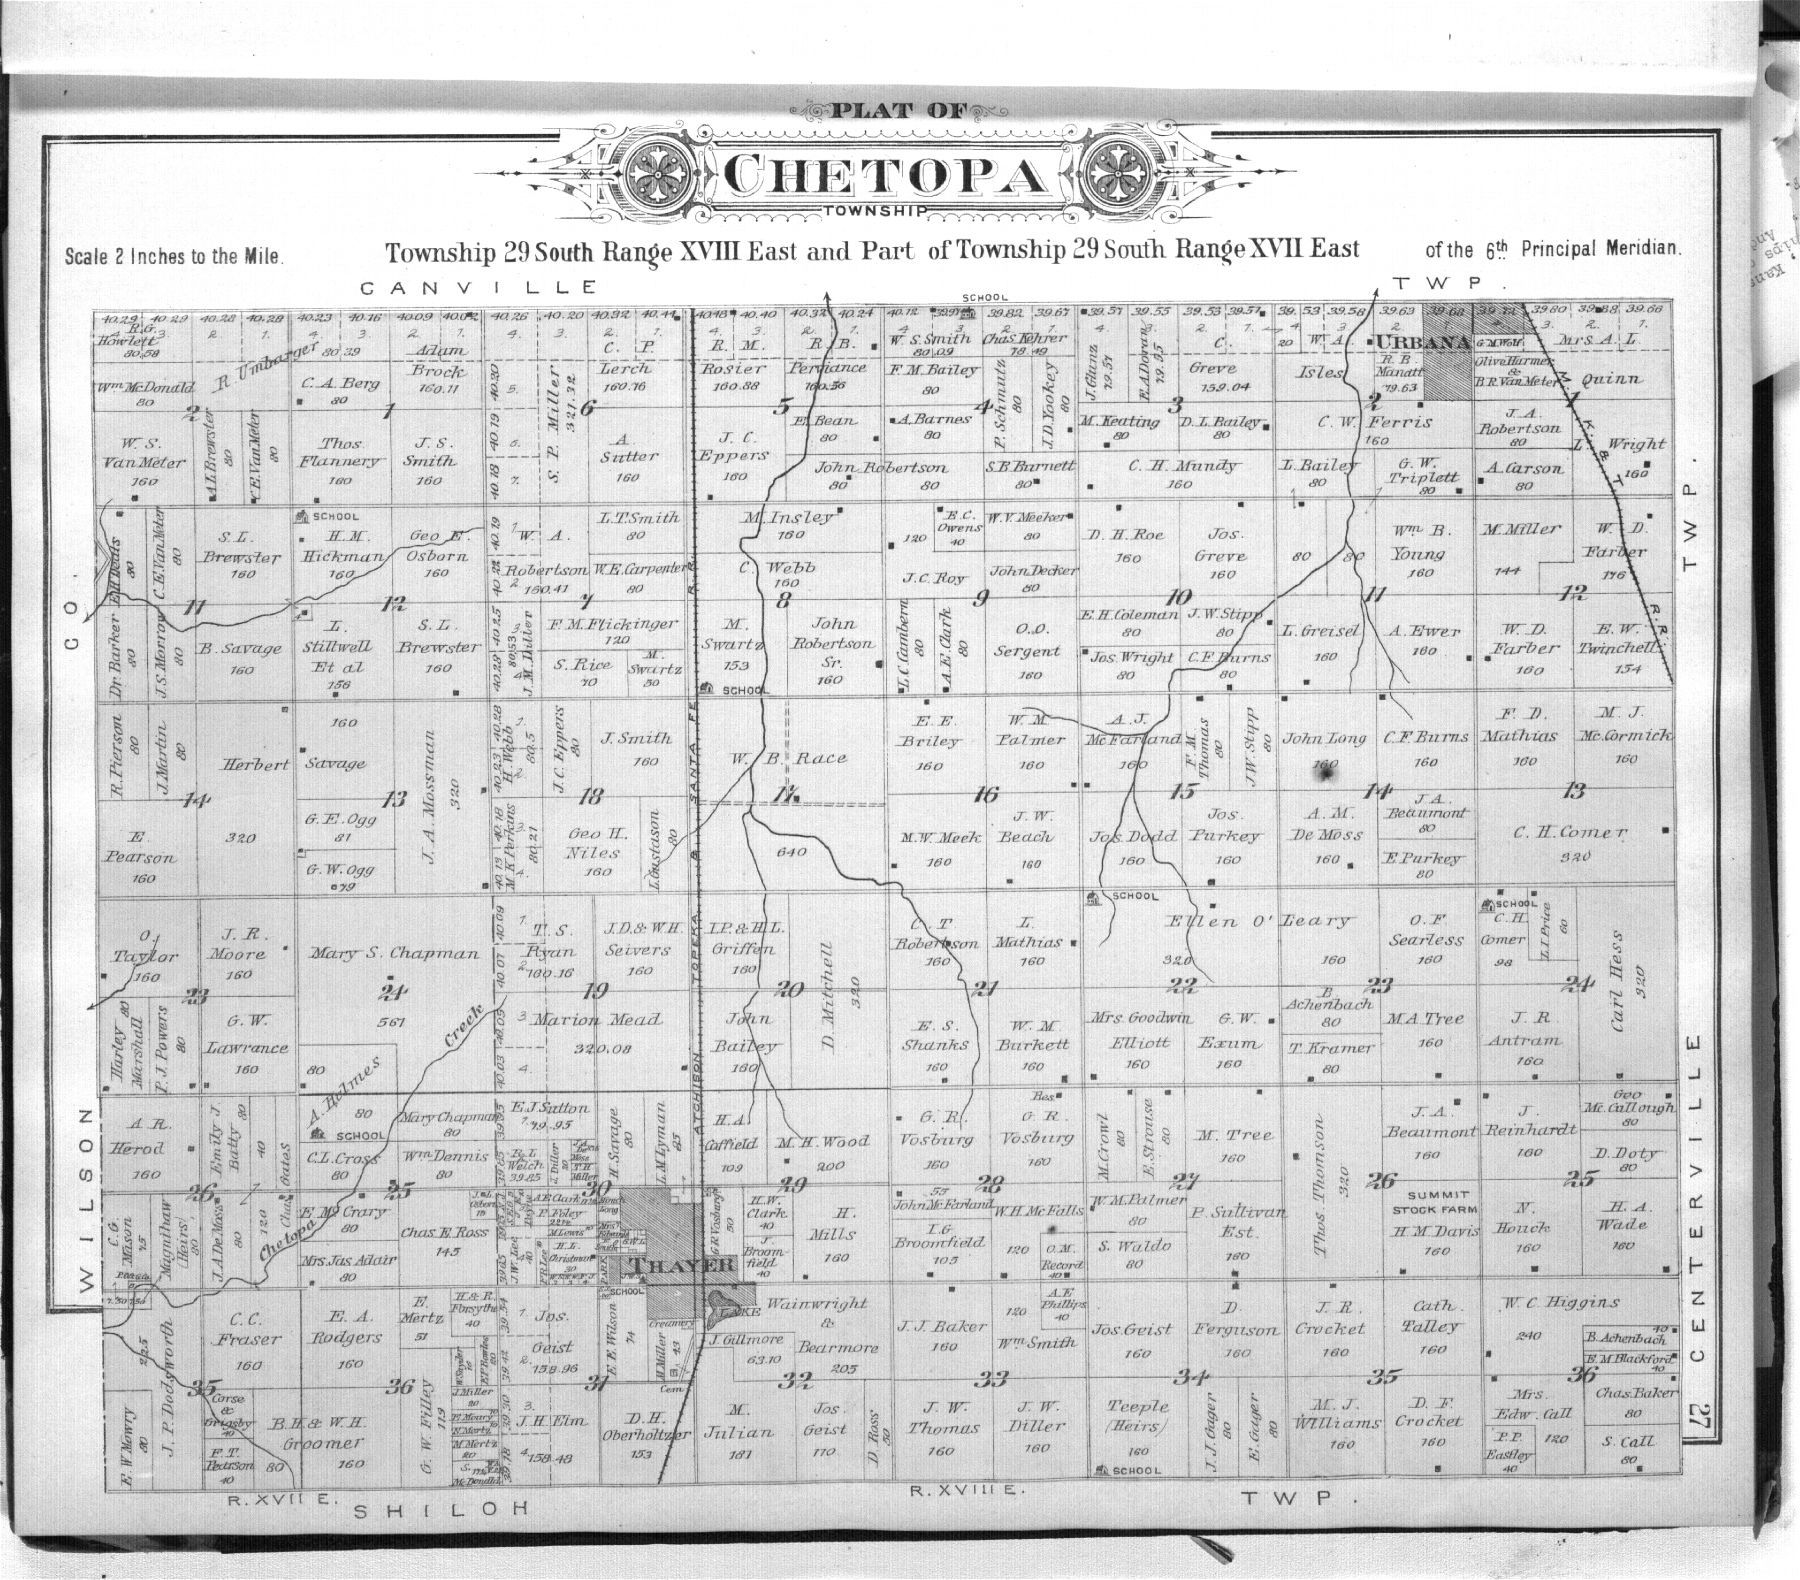 Standard atlas of Neosho County, Kansas - 27